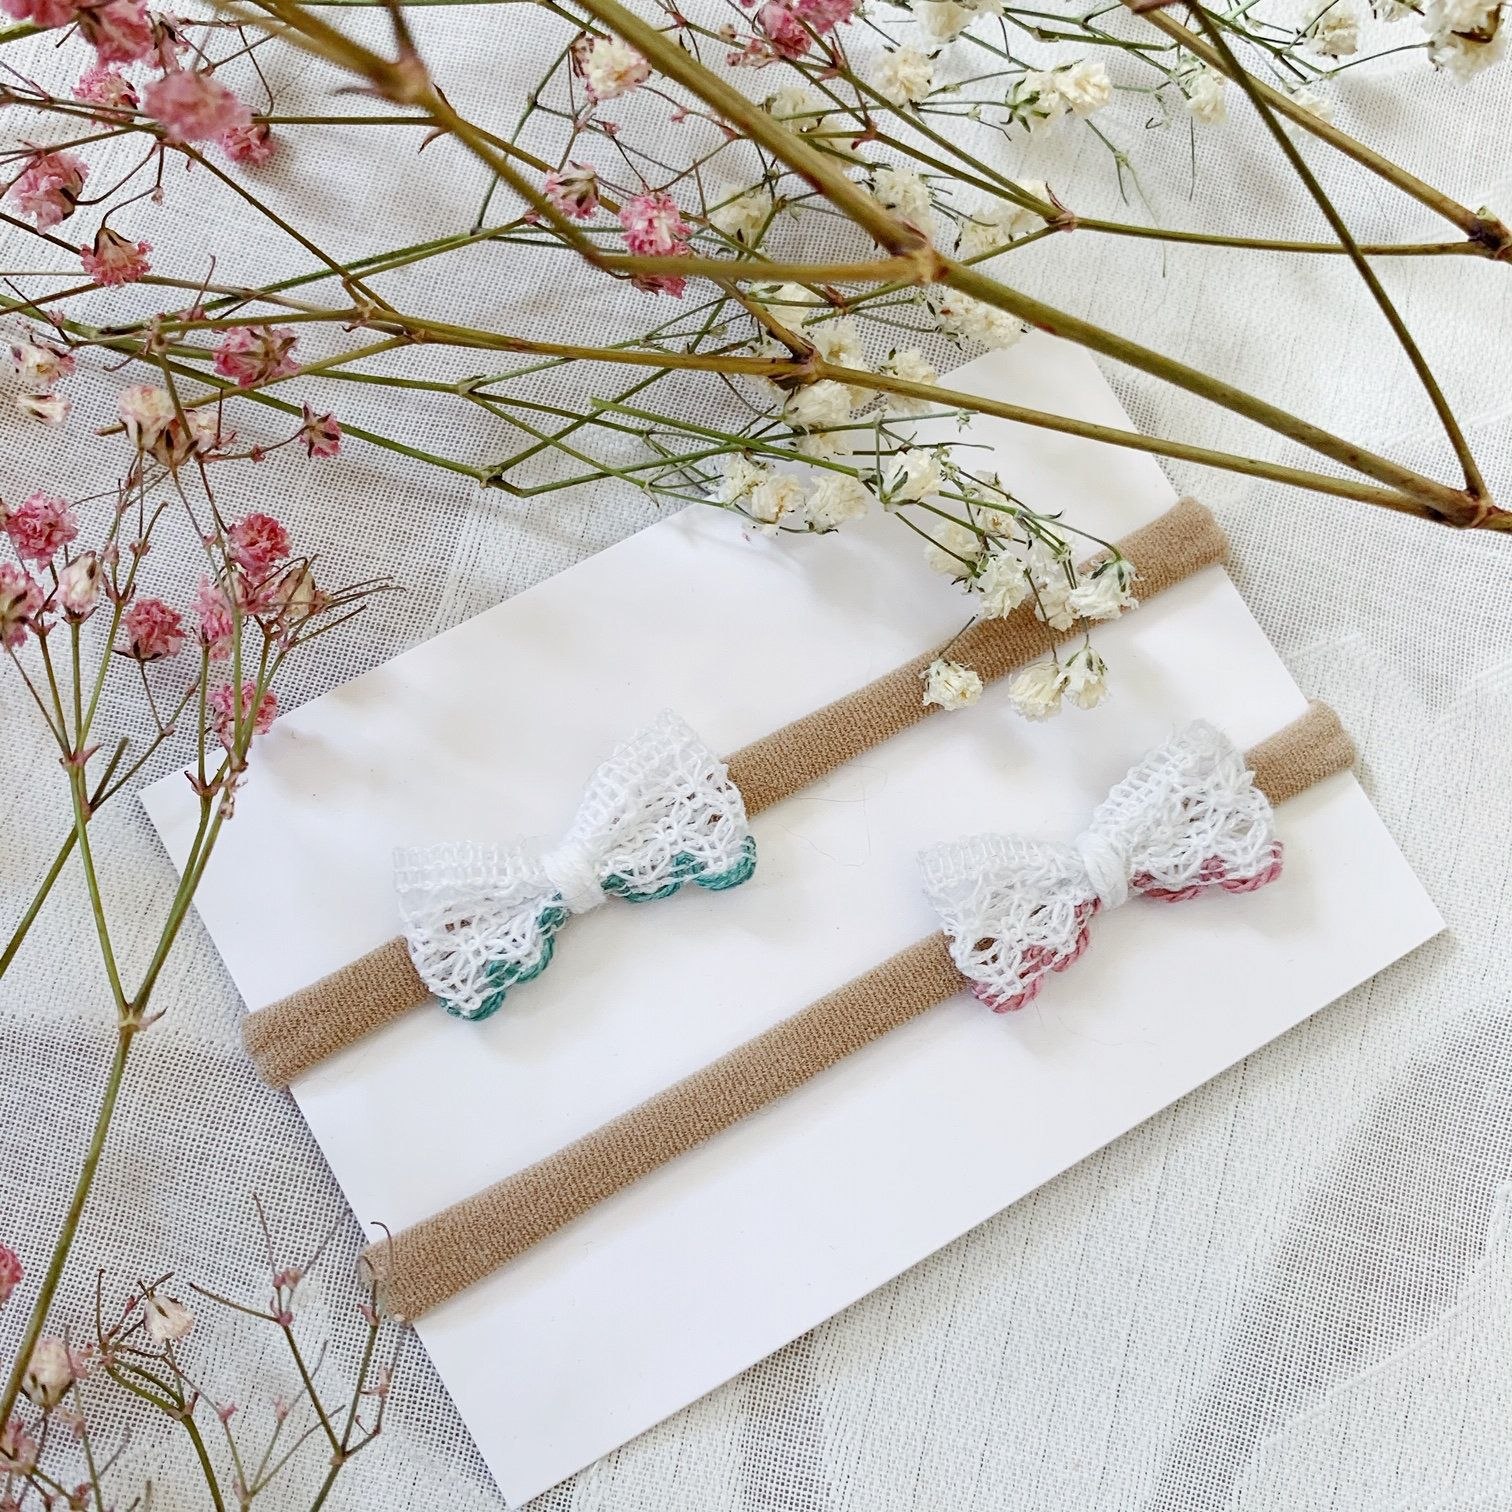 This listing is for [1] or more fabric bows which look